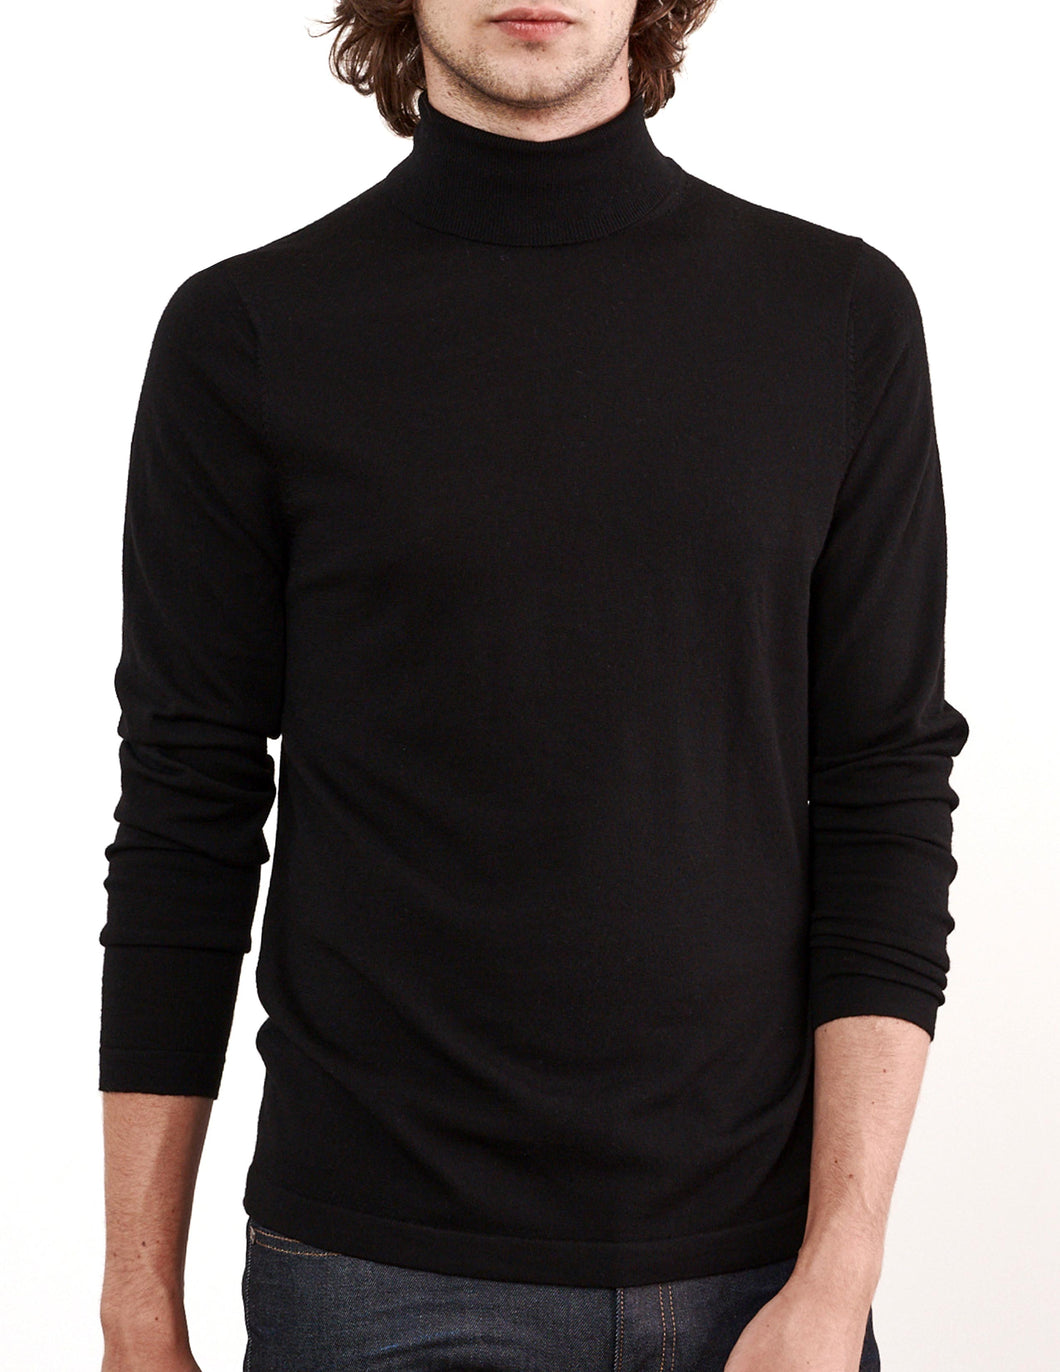 Black Mock Turtleneck Sweater